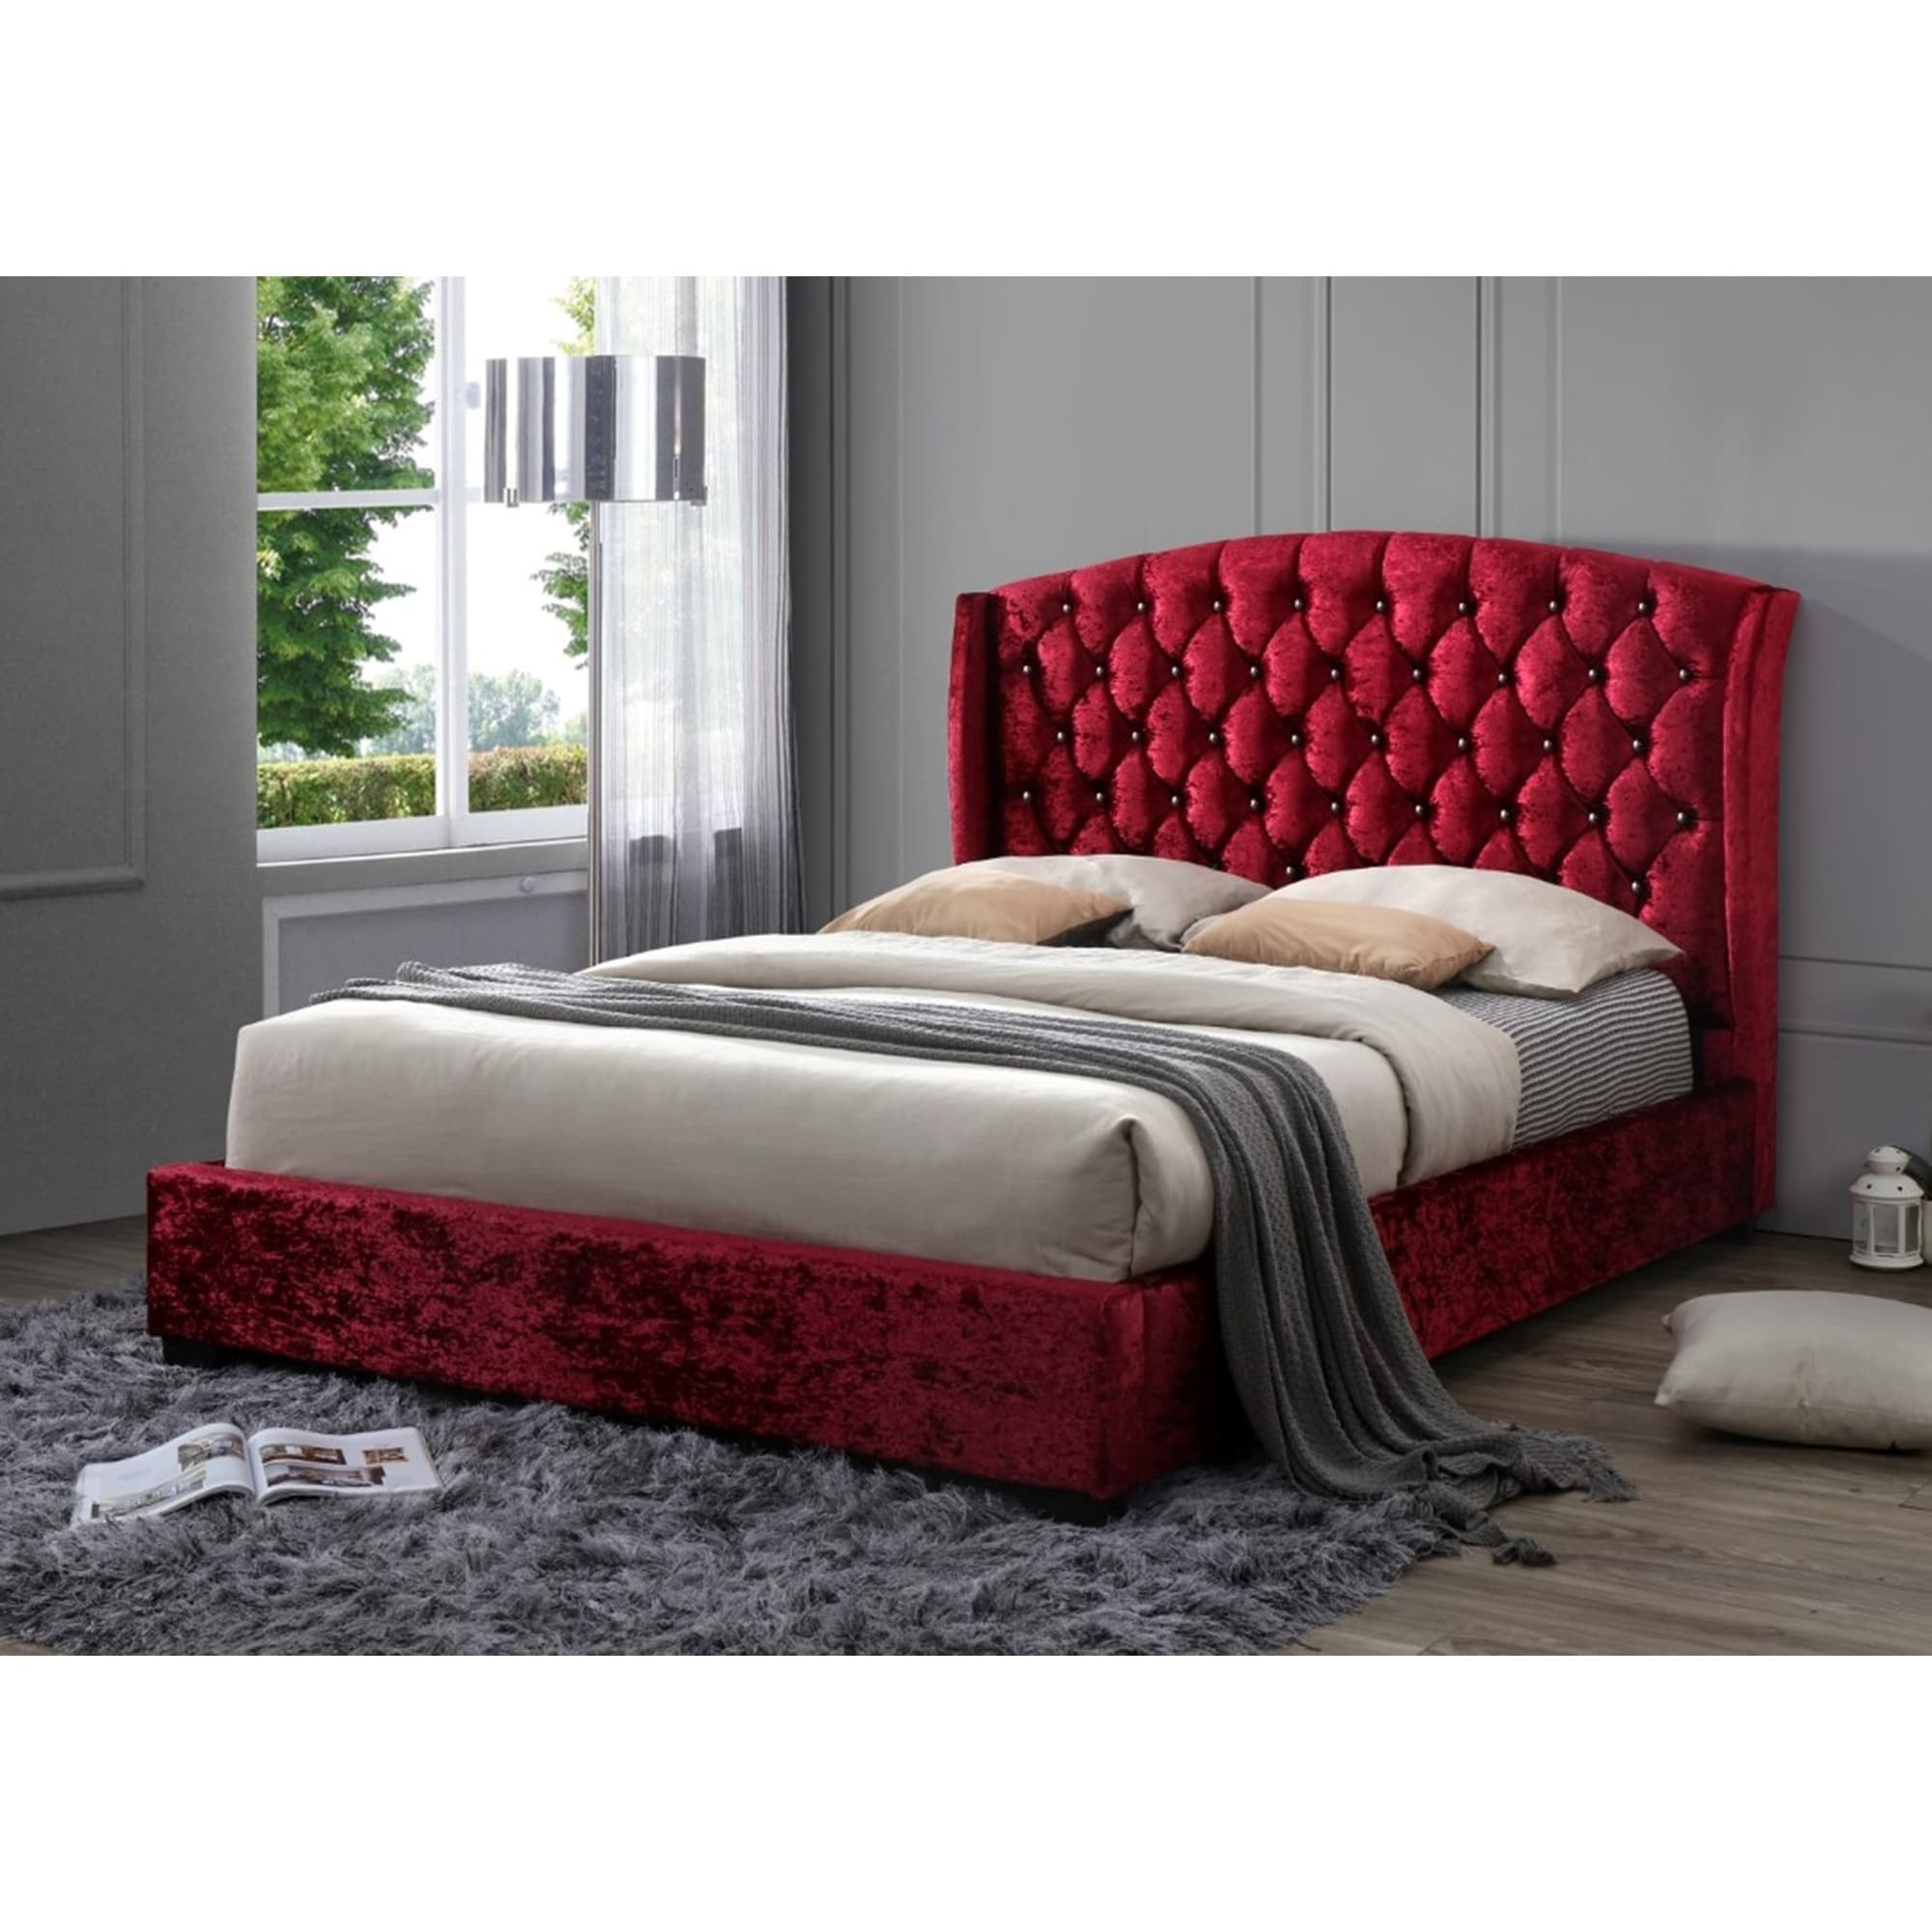 Picture of: Red Tufted Classic Crushed Velvet Wingback Queen Platform Bed With A 65 In Tall Headboard No Box Spring Required Overstock 25613674